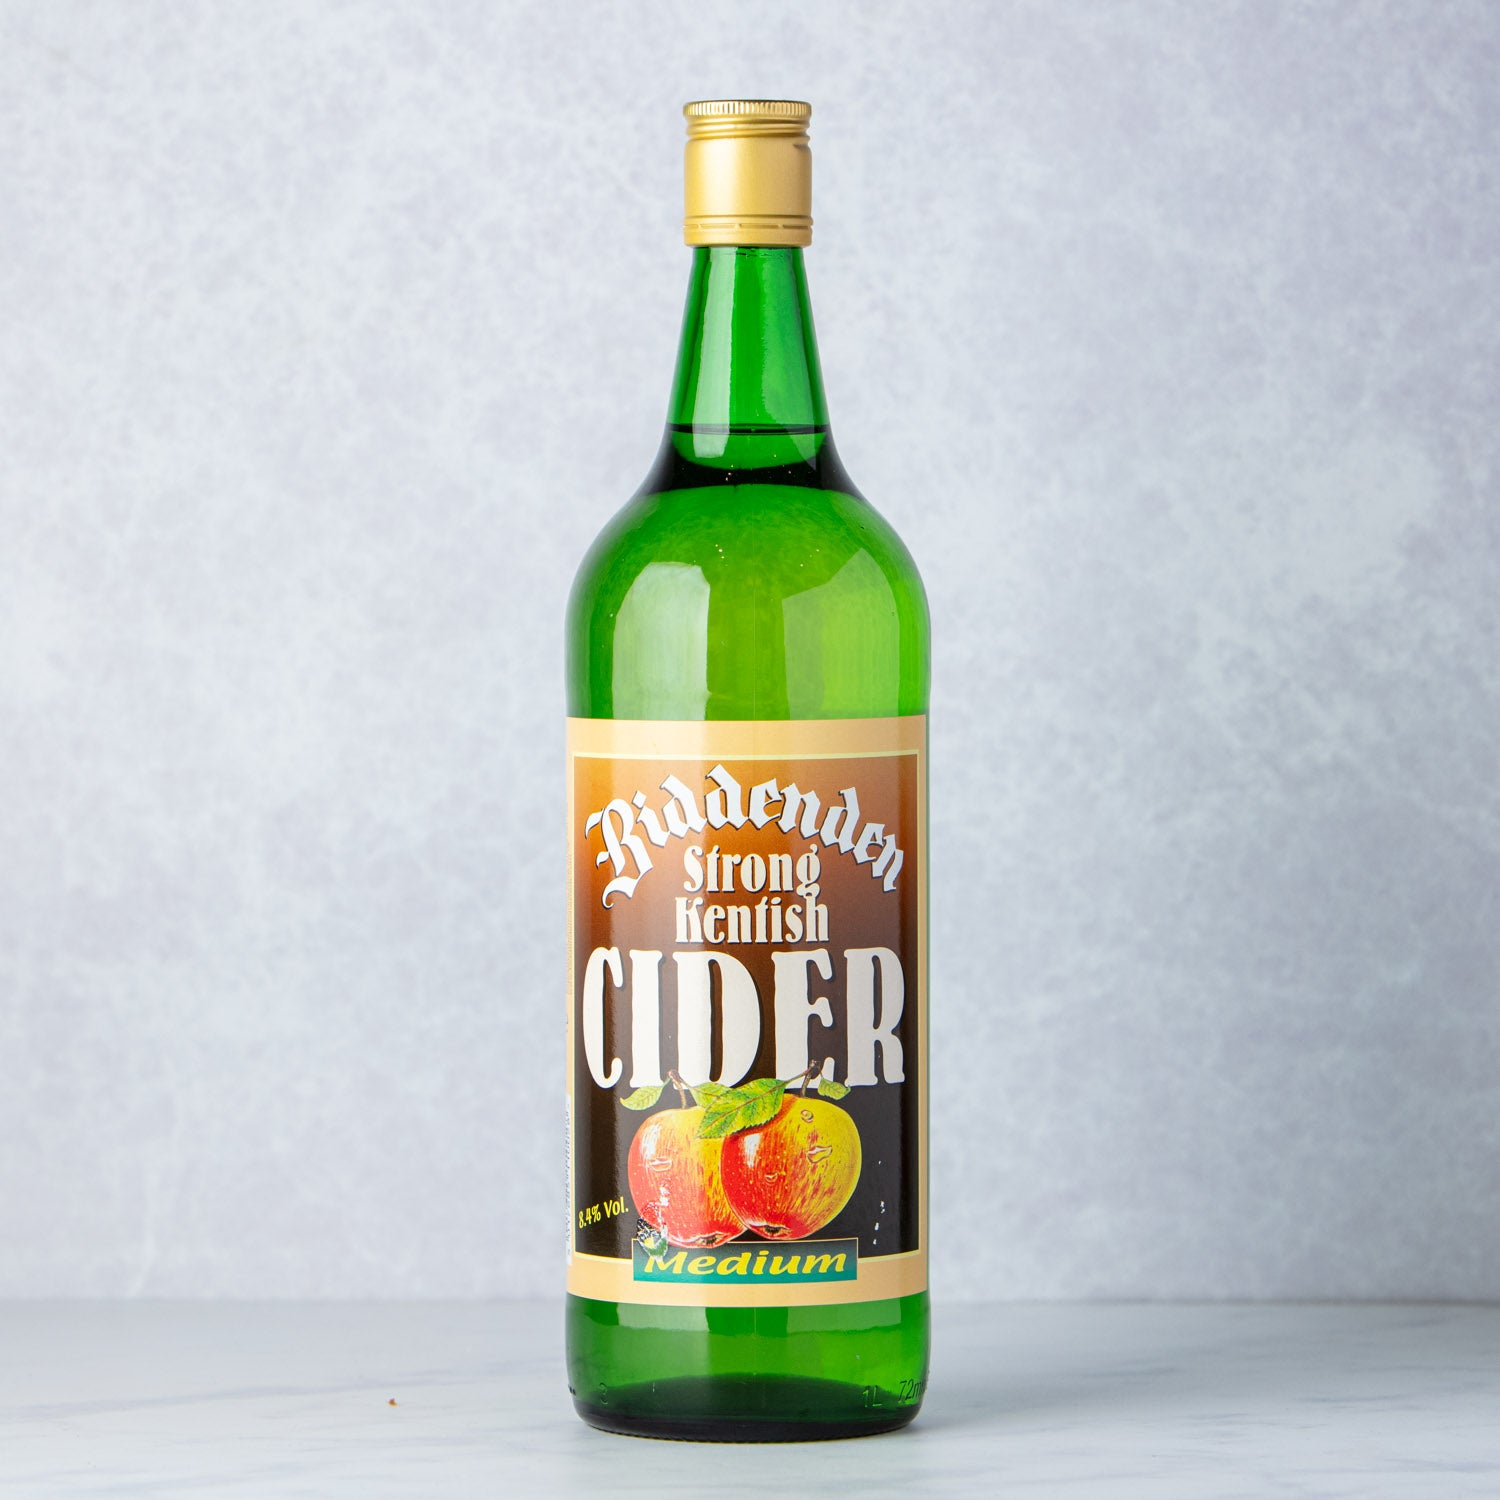 BIDDENDEN STRONG KENTISH CIDER - MEDIUM